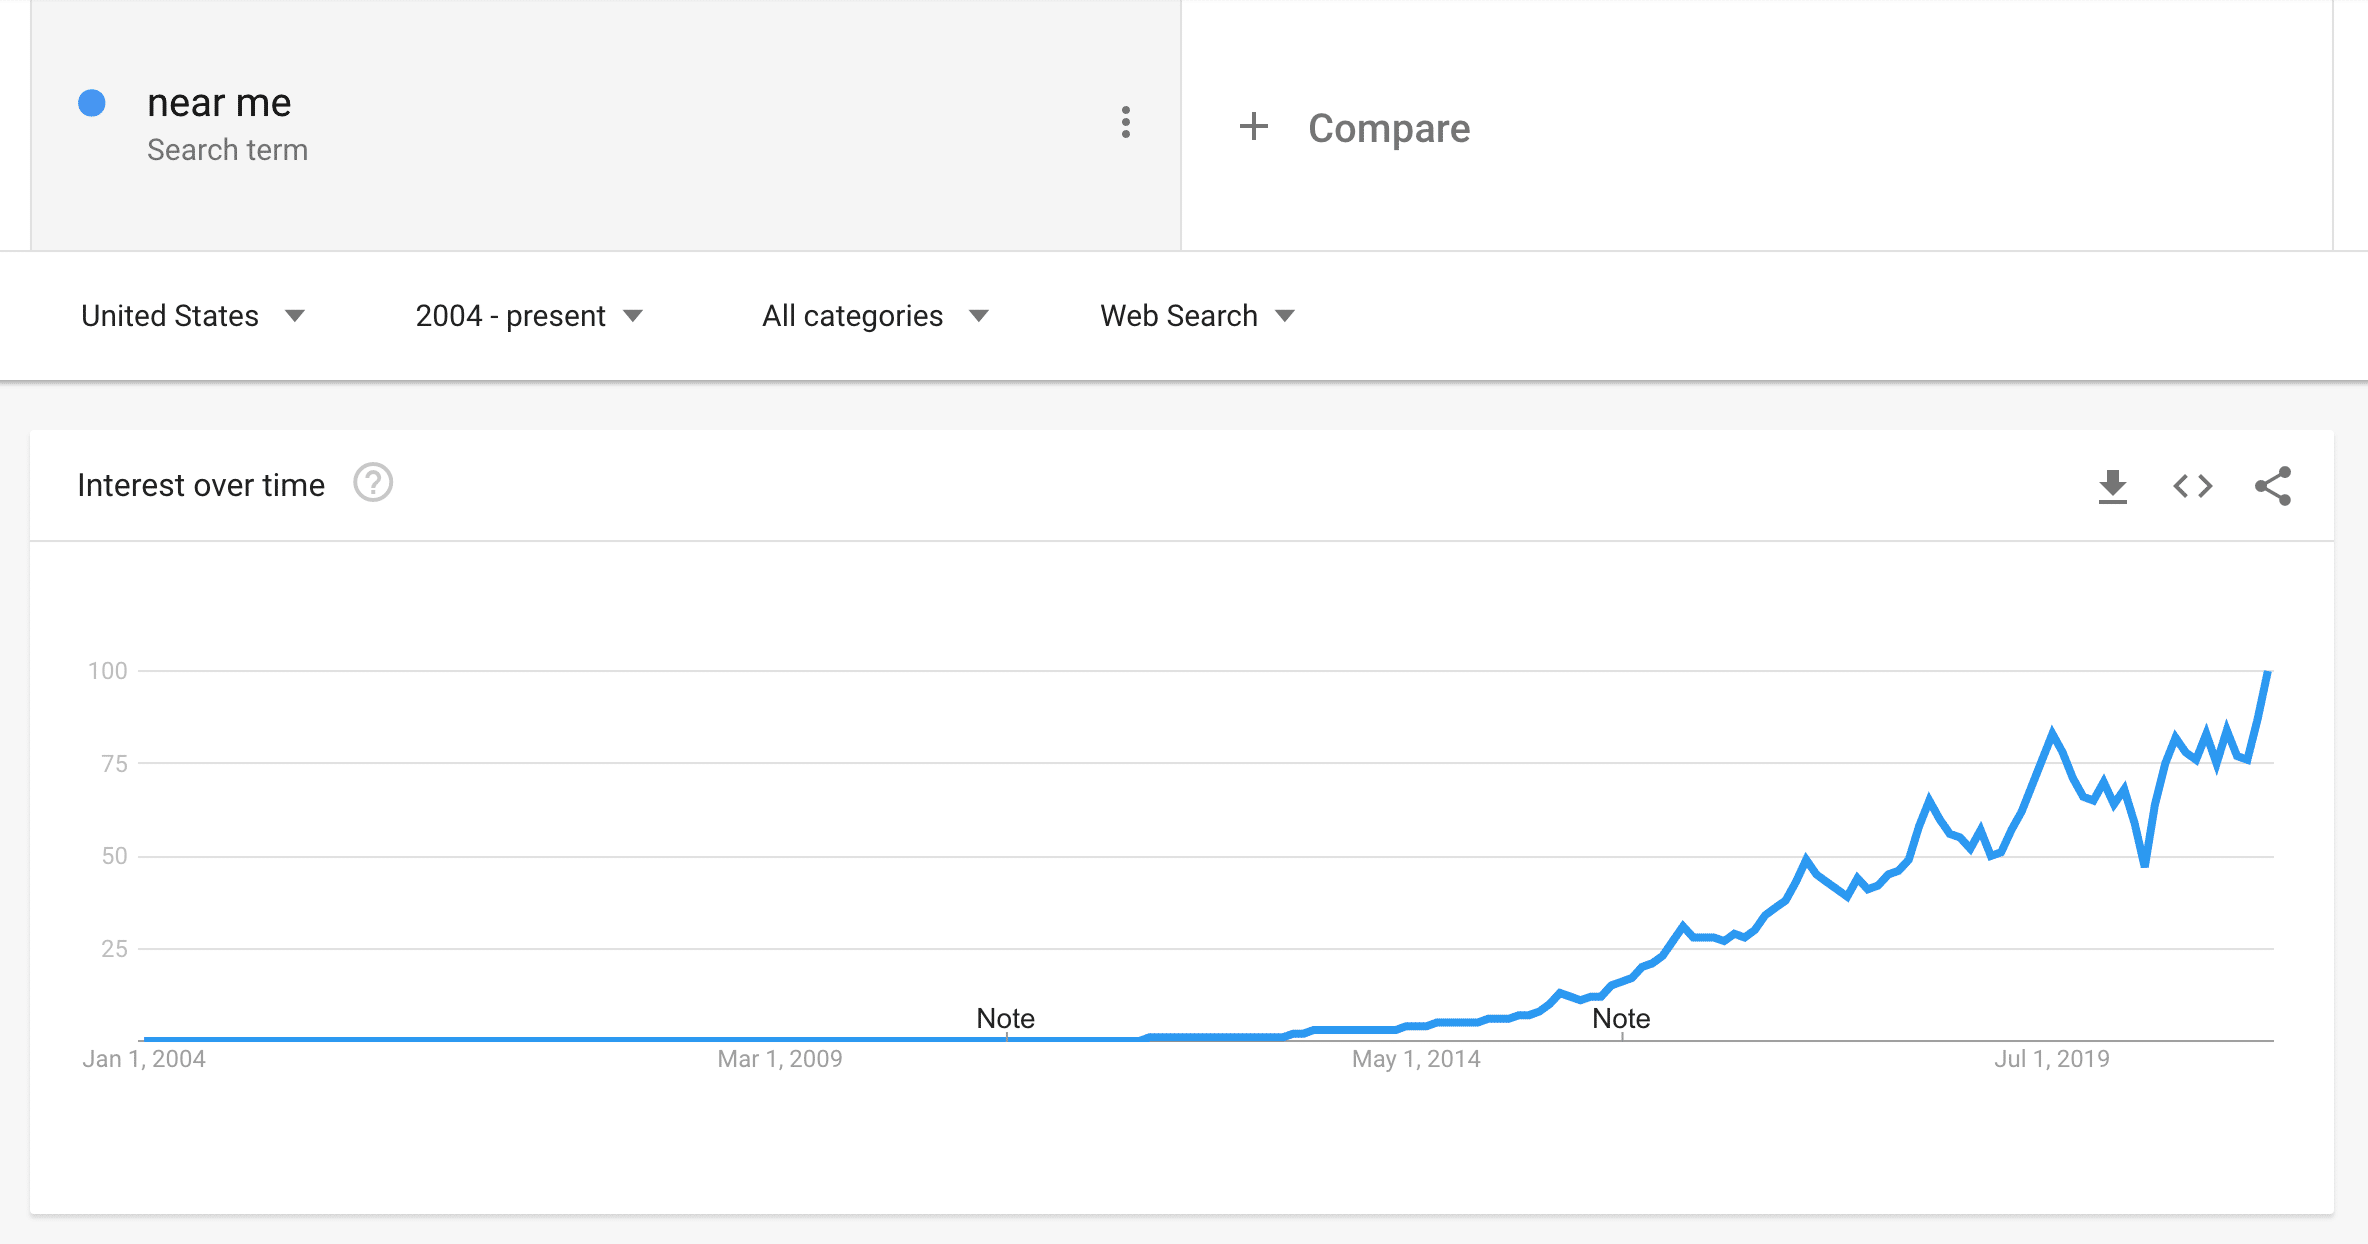 google trends near me searches